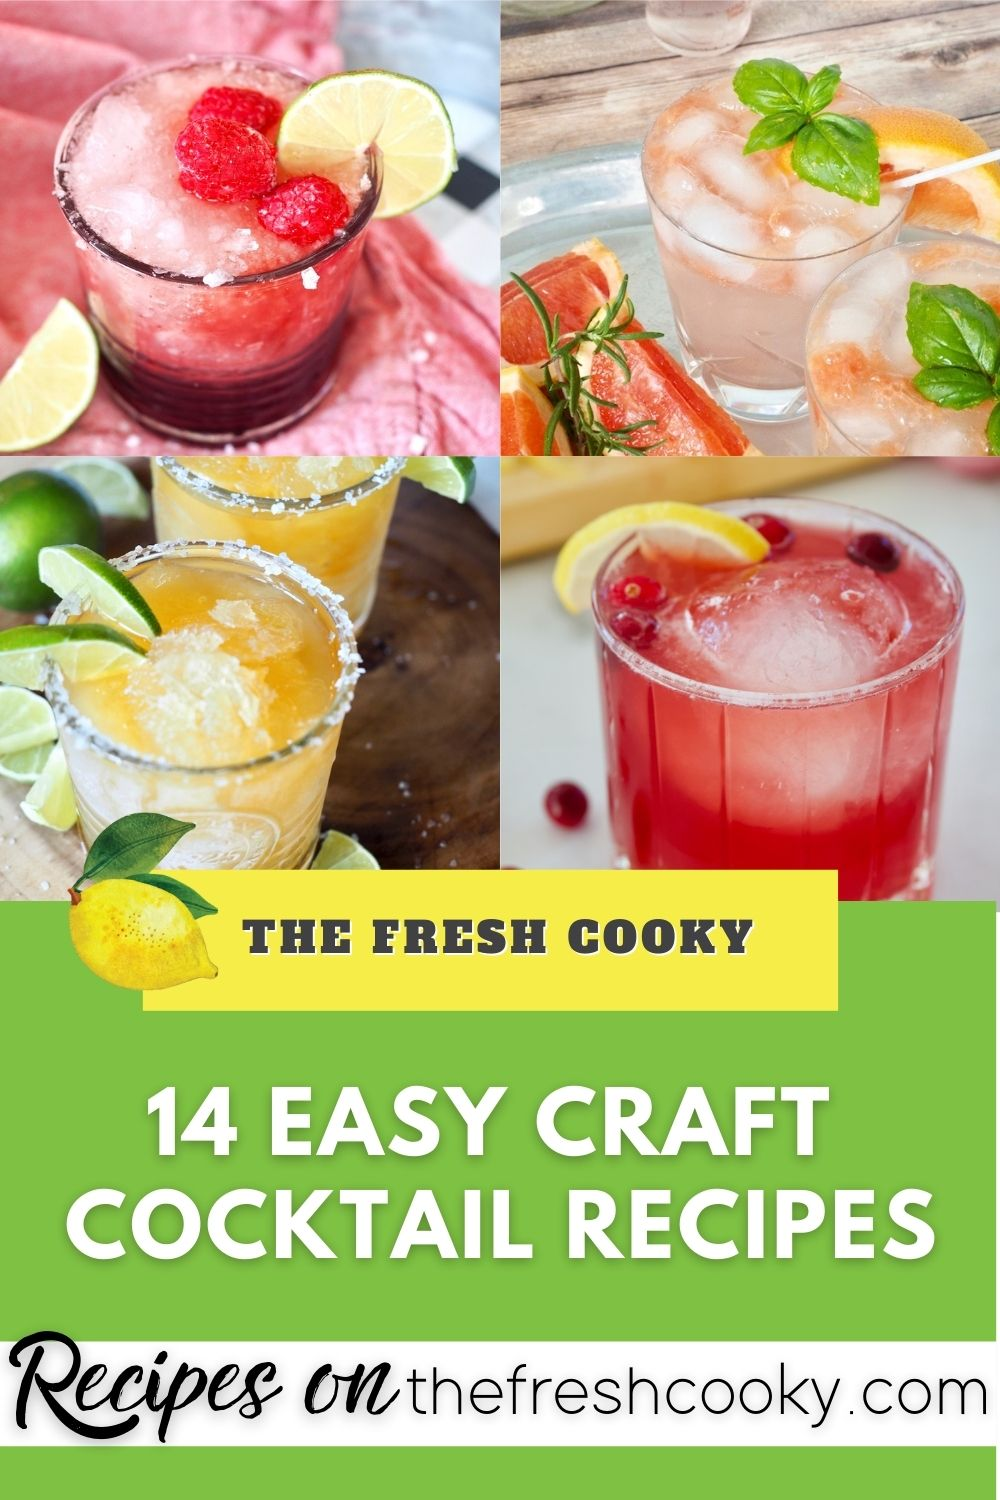 Pinterest multi-image pin for 14 easy Craft Cocktail Recipes with four different cocktail images. Hibiscus margarita, Vodka Smash, Cranberry Bourbon, Margarita